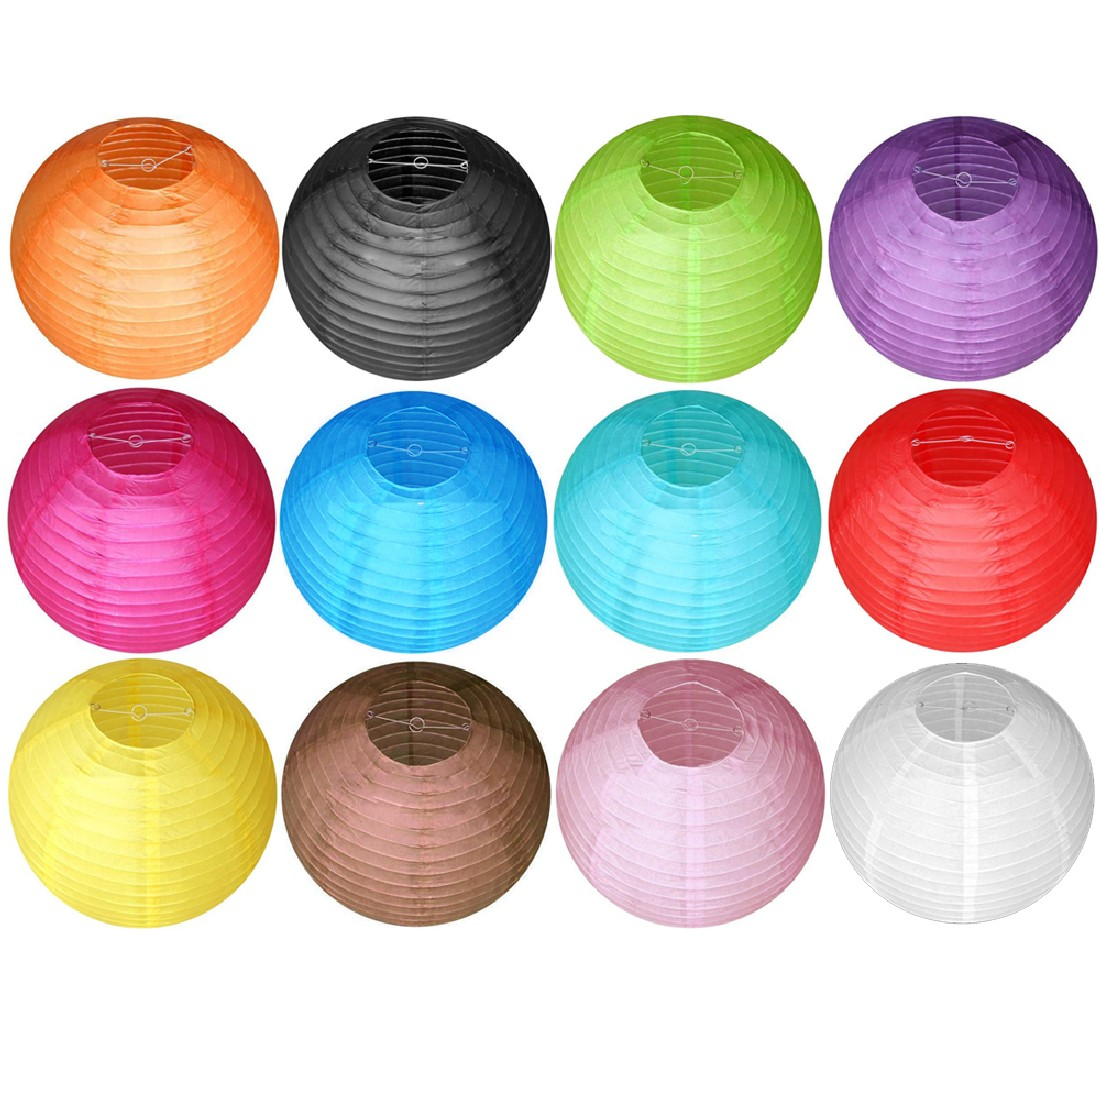 20 50cm Traditional Chinese Round Paper Lanterns For Wedding Birthday Party Decorations Supply Lamp Paper Ball